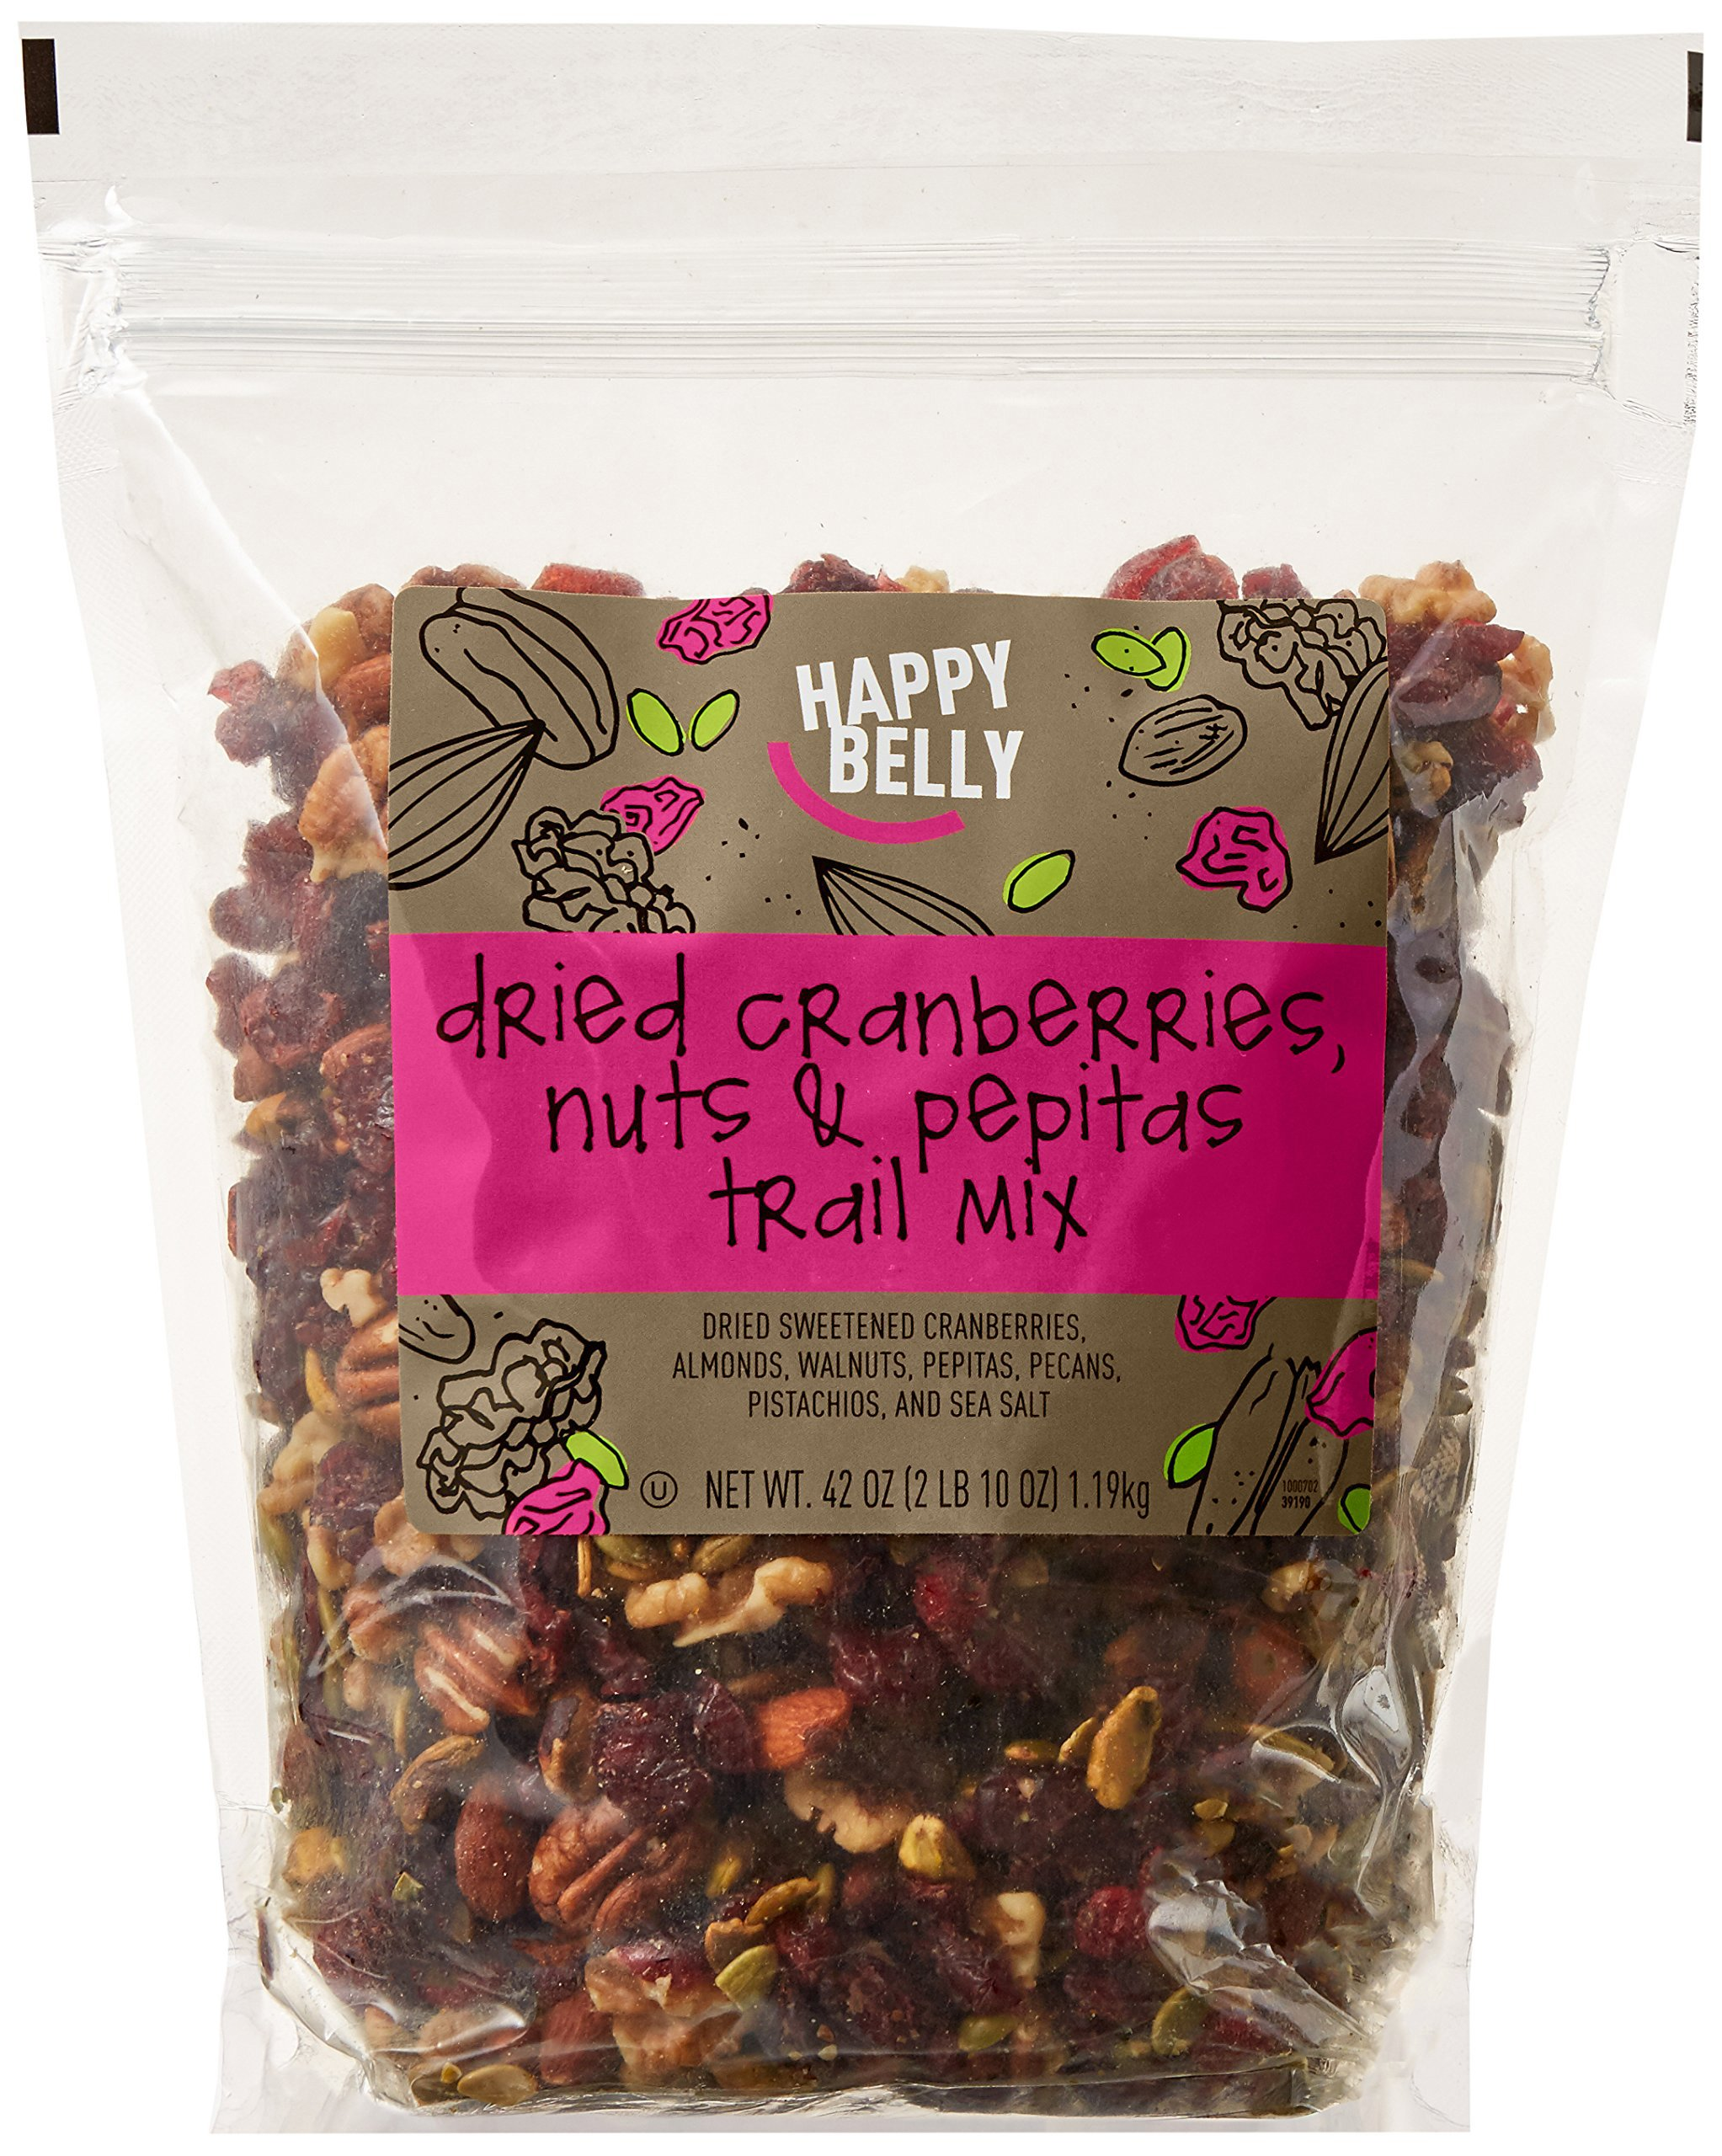 Amazon Brand - Happy Belly Dried Cranberries, Nuts & Pepitas Trail Mix, 42 ounce by Happy Belly (Image #1)